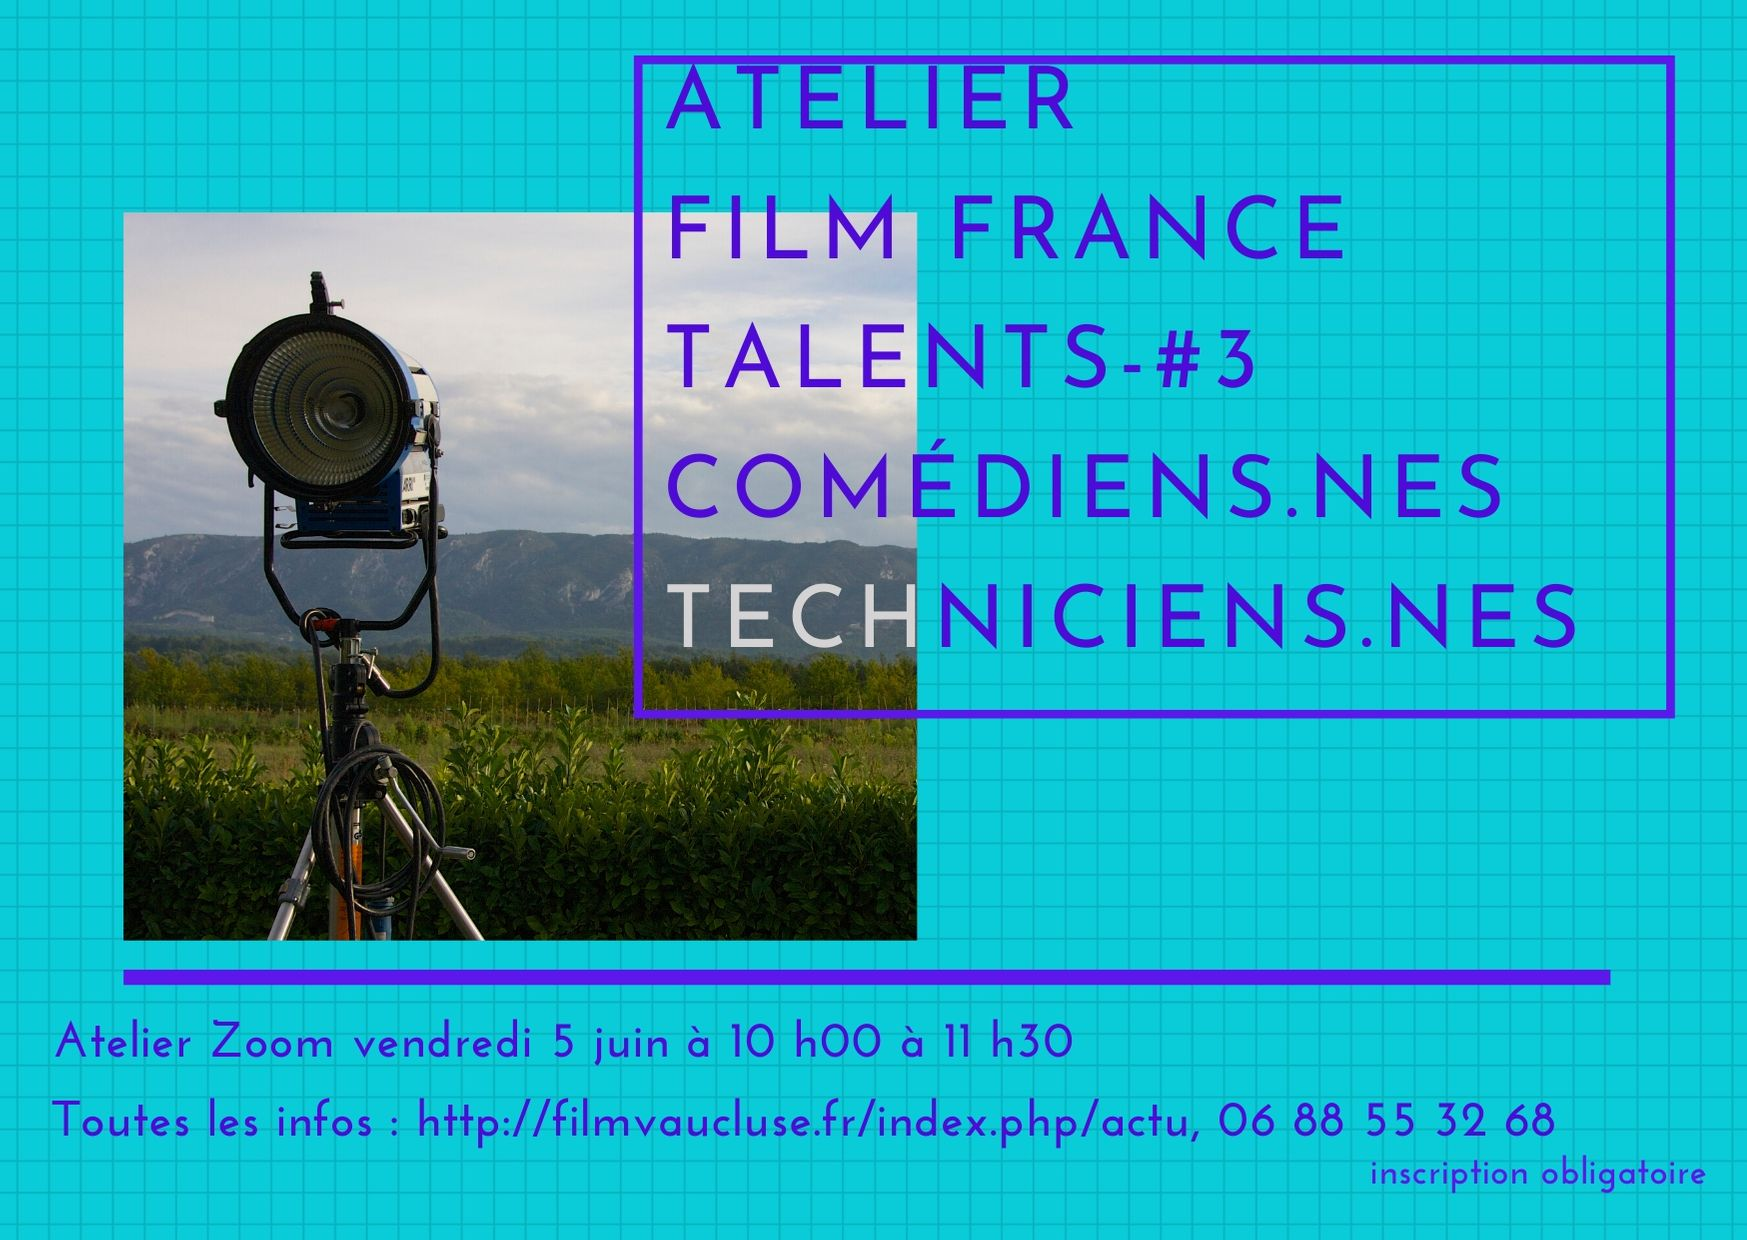 Atelier zoom base Film France Talents -#3 techniciens-nes /Artistes-interprètes